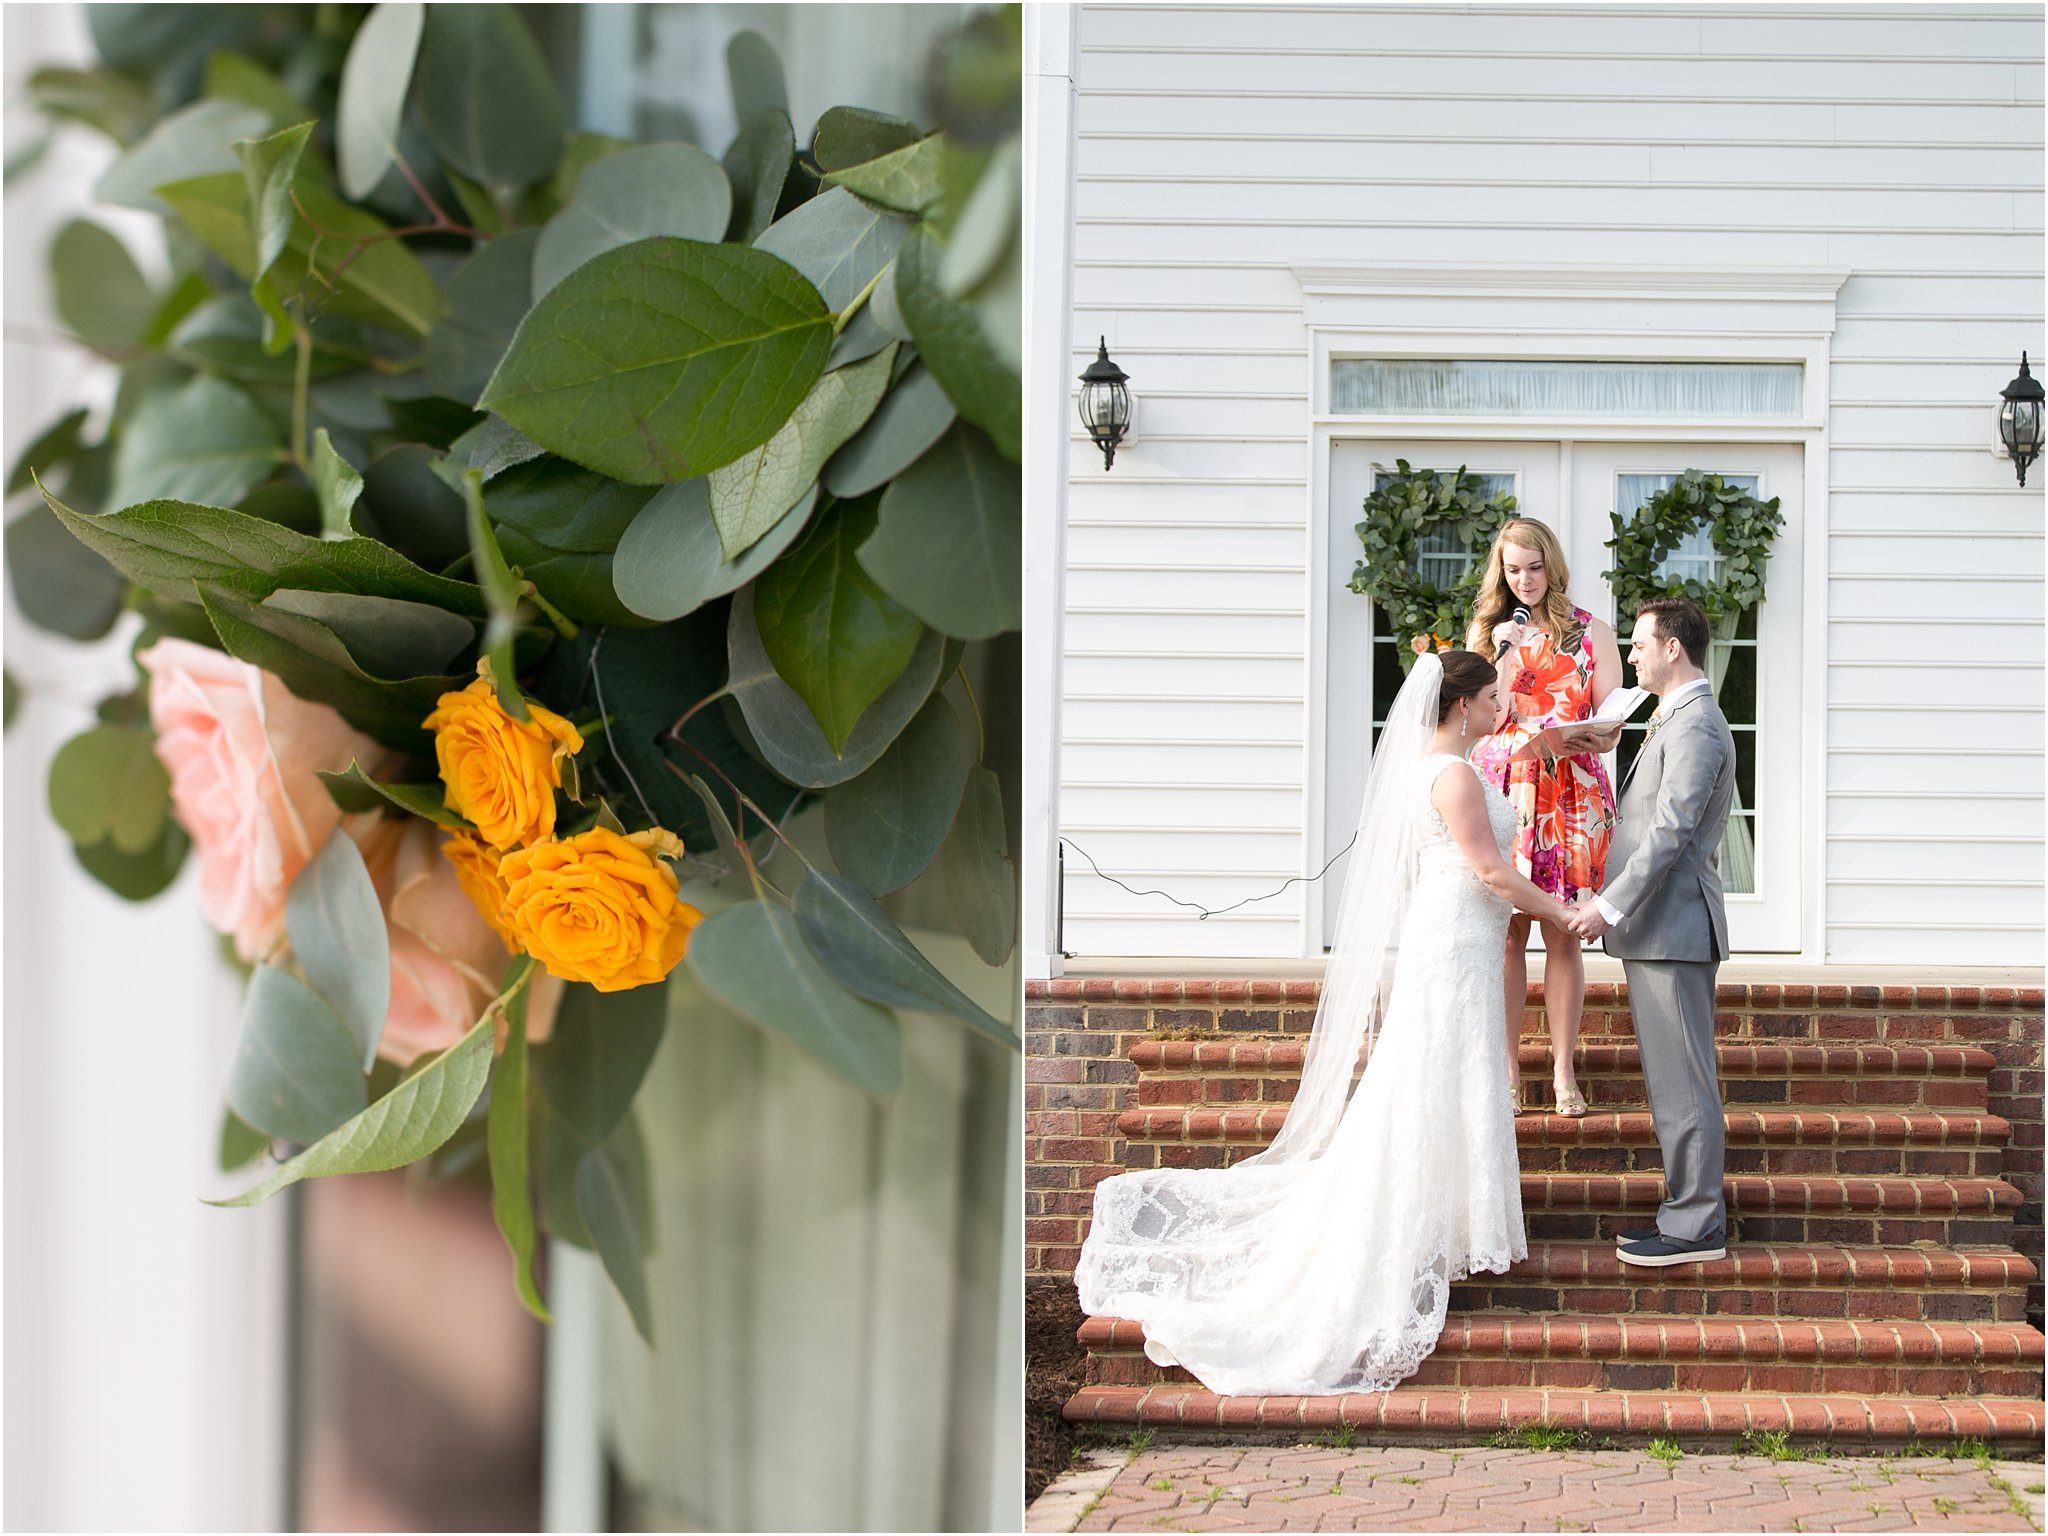 jessica_ryan_photography_holly_ridge_manor_wedding_roost_flowers_jamie_leigh_events_dhalia_edwards_candid_vibrant_wedding_colors_1294